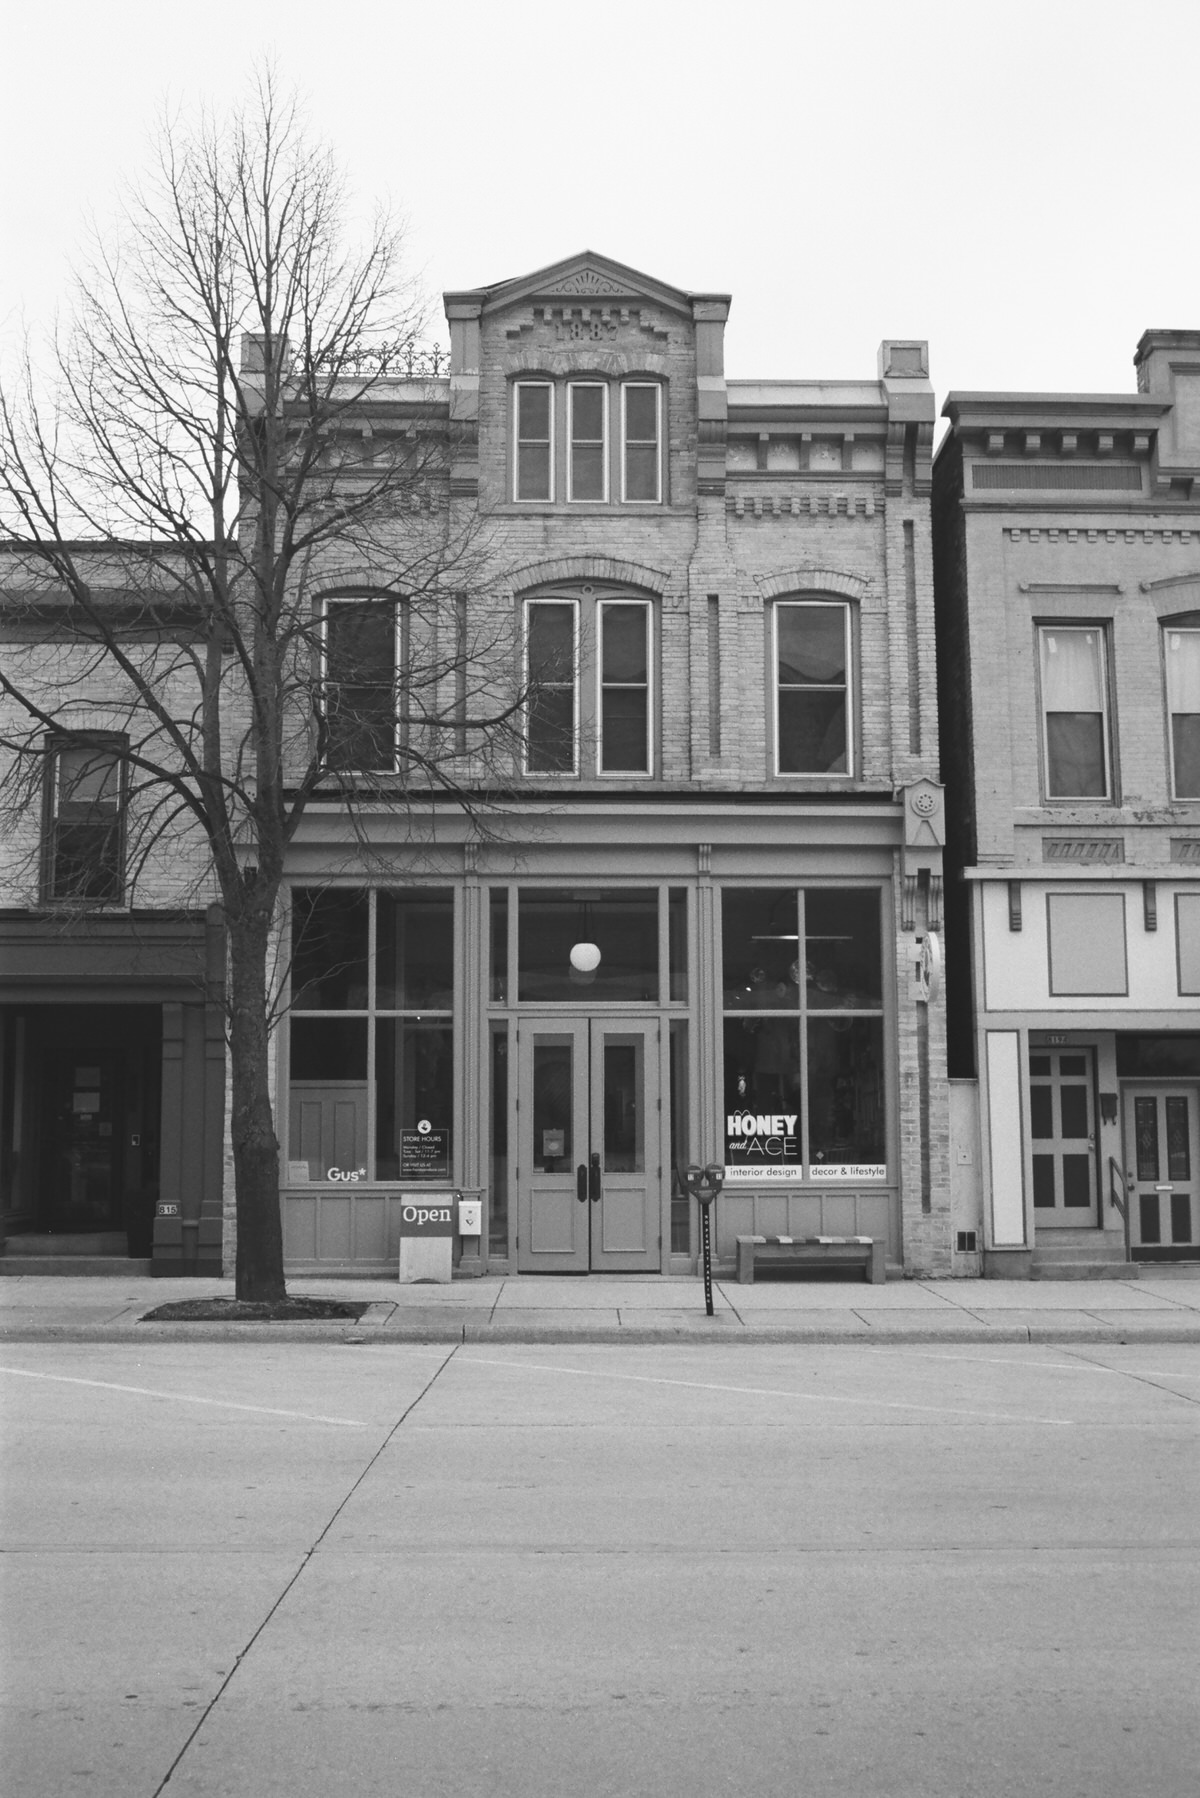 Black-and-white-film-photography-of-Honey-and-Ace-Sheboygan-Wisconsin-by-Studio-L-photographer-Laura-Schneider-_010